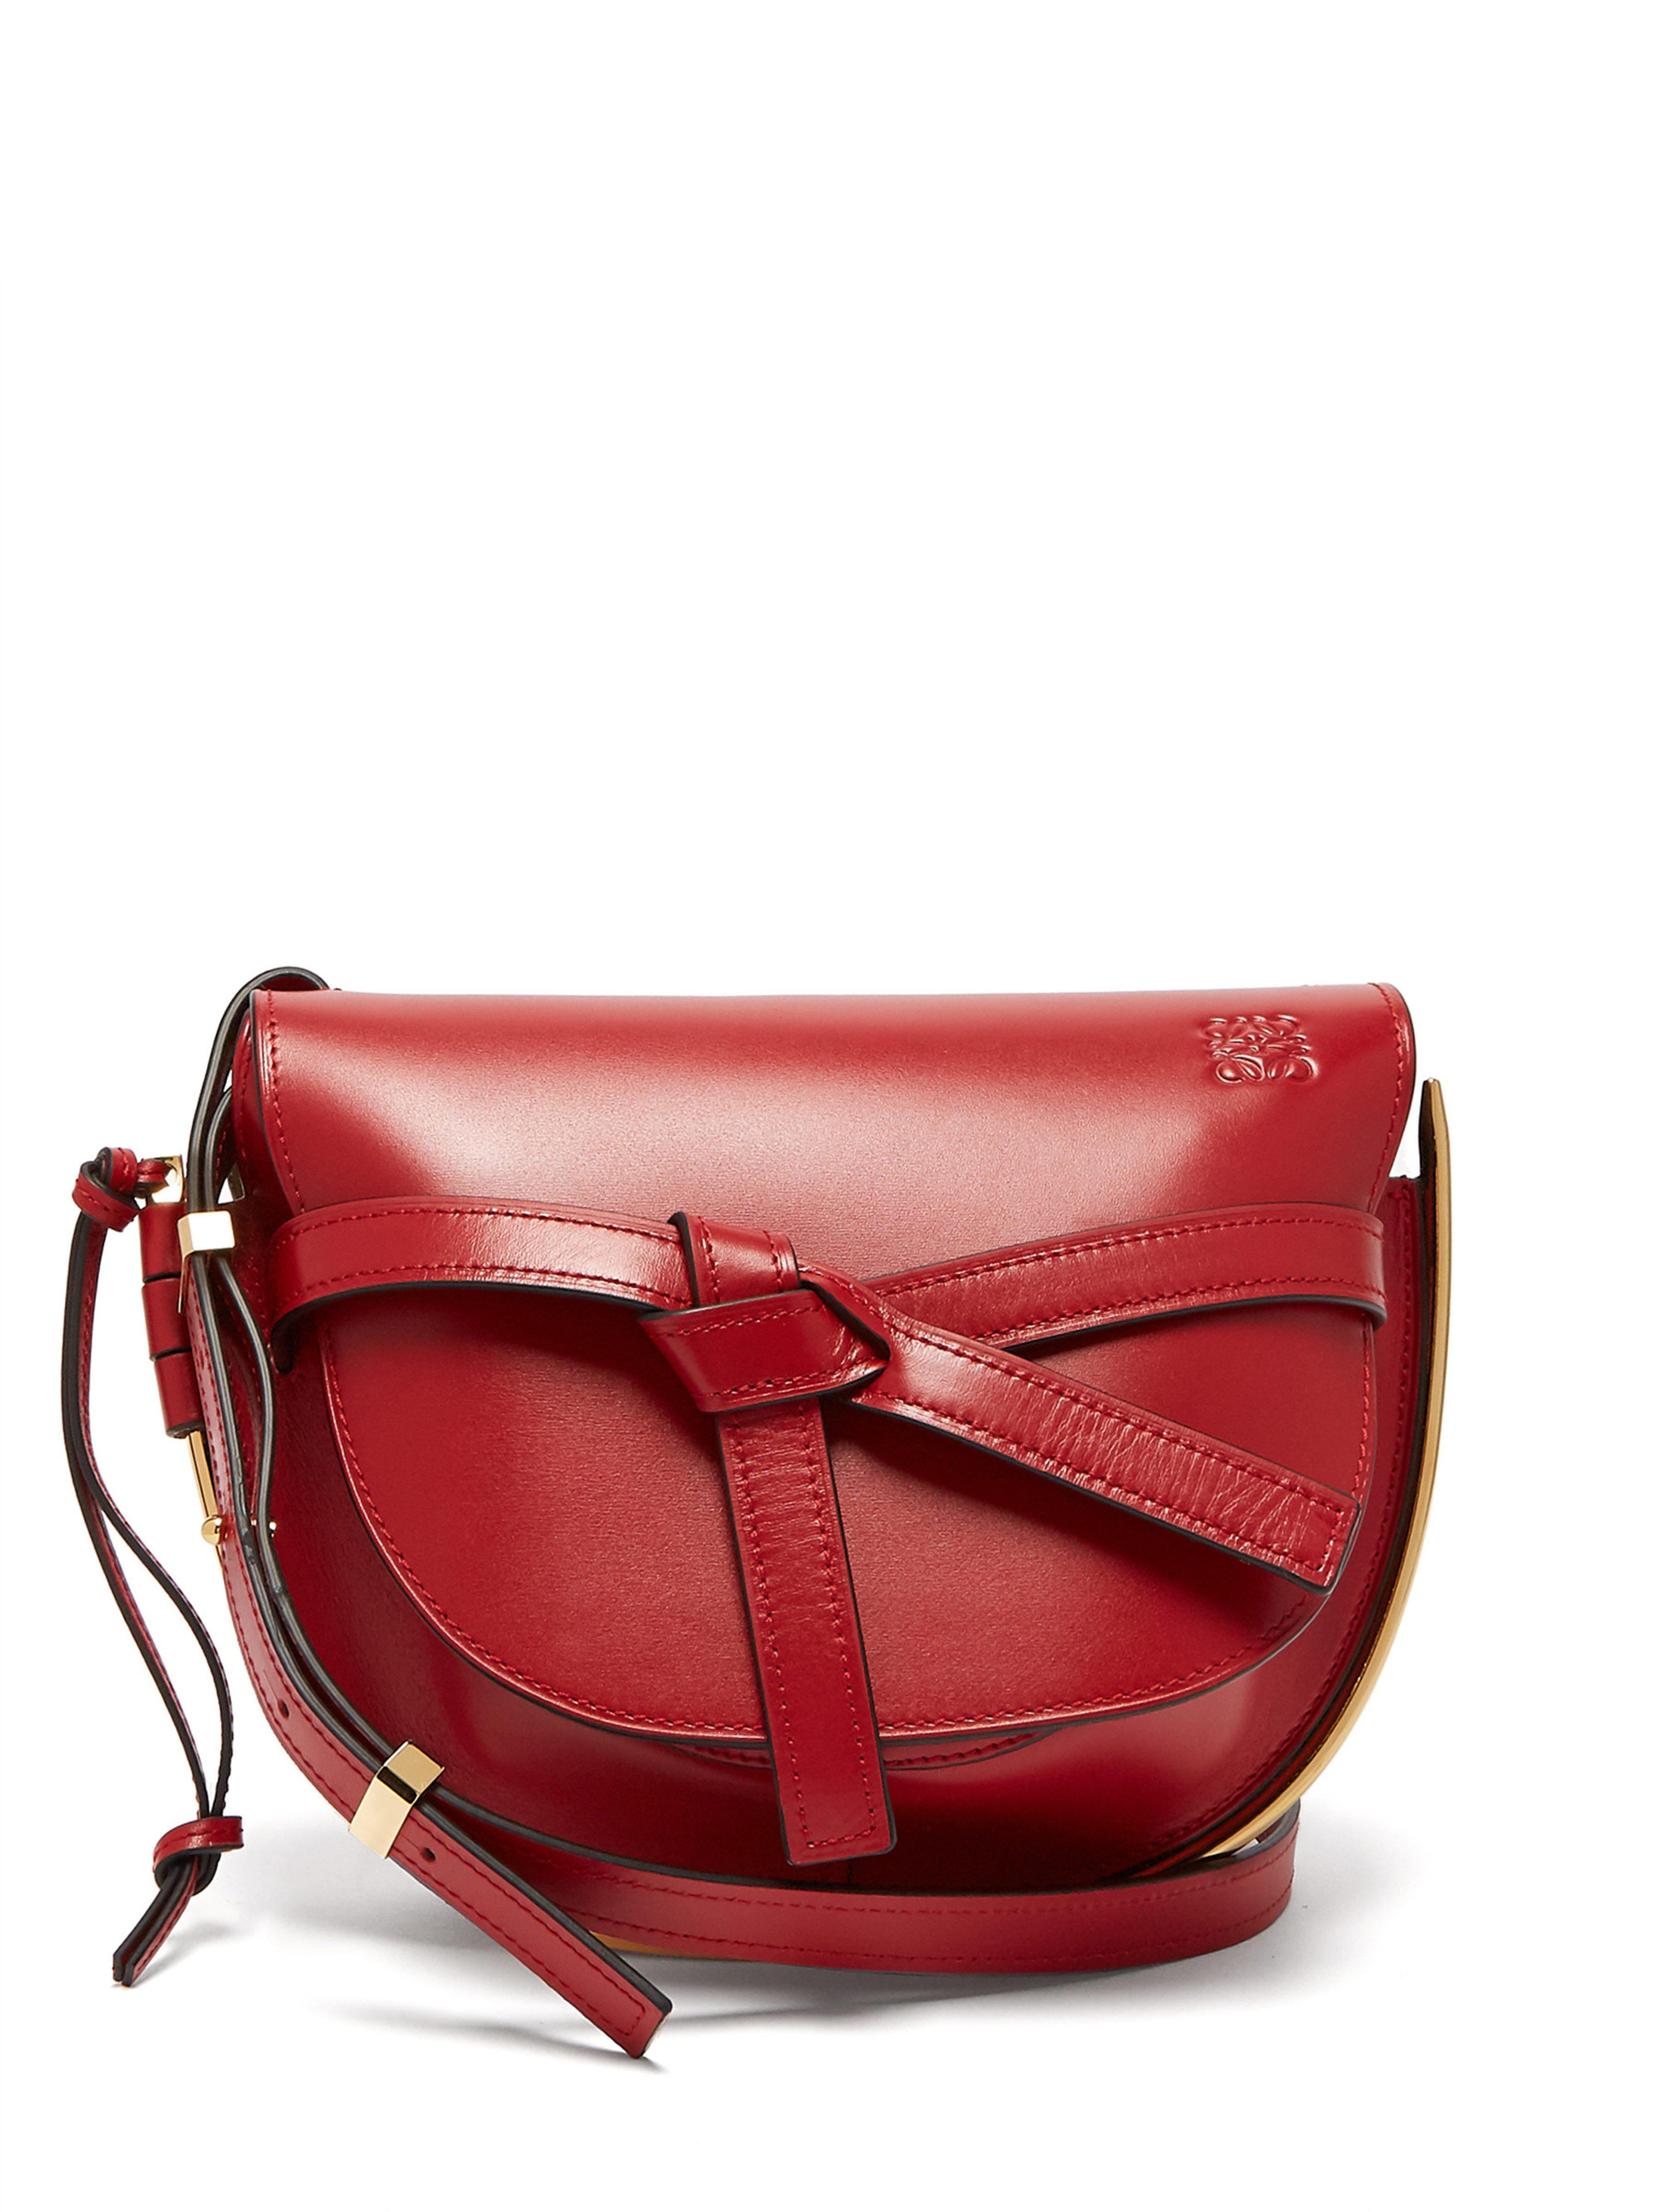 f944d9dfe1f Loewe Gate Small Grained-leather Cross-body Bag in Red - Lyst